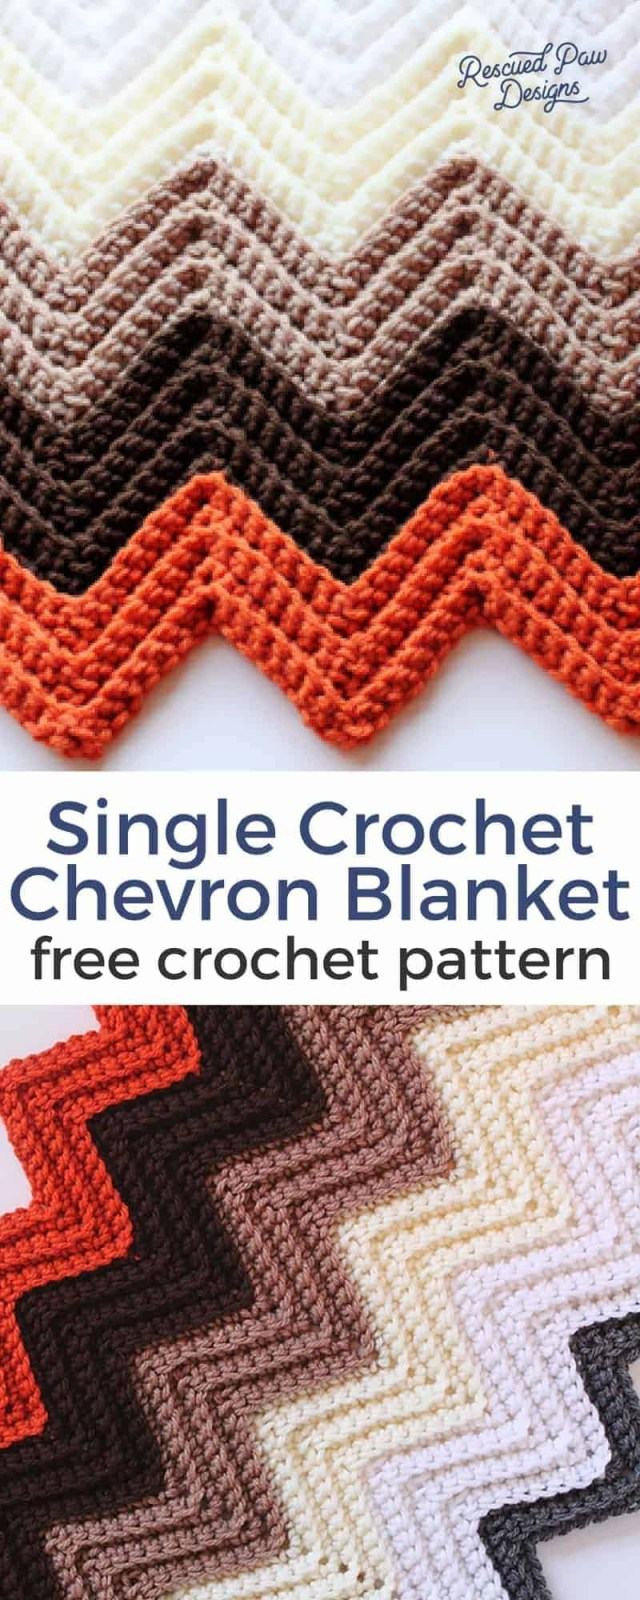 Chevron Zig Zag Crochet Pattern Chevron Crochet Blanket Pattern Rescued Paw Designs